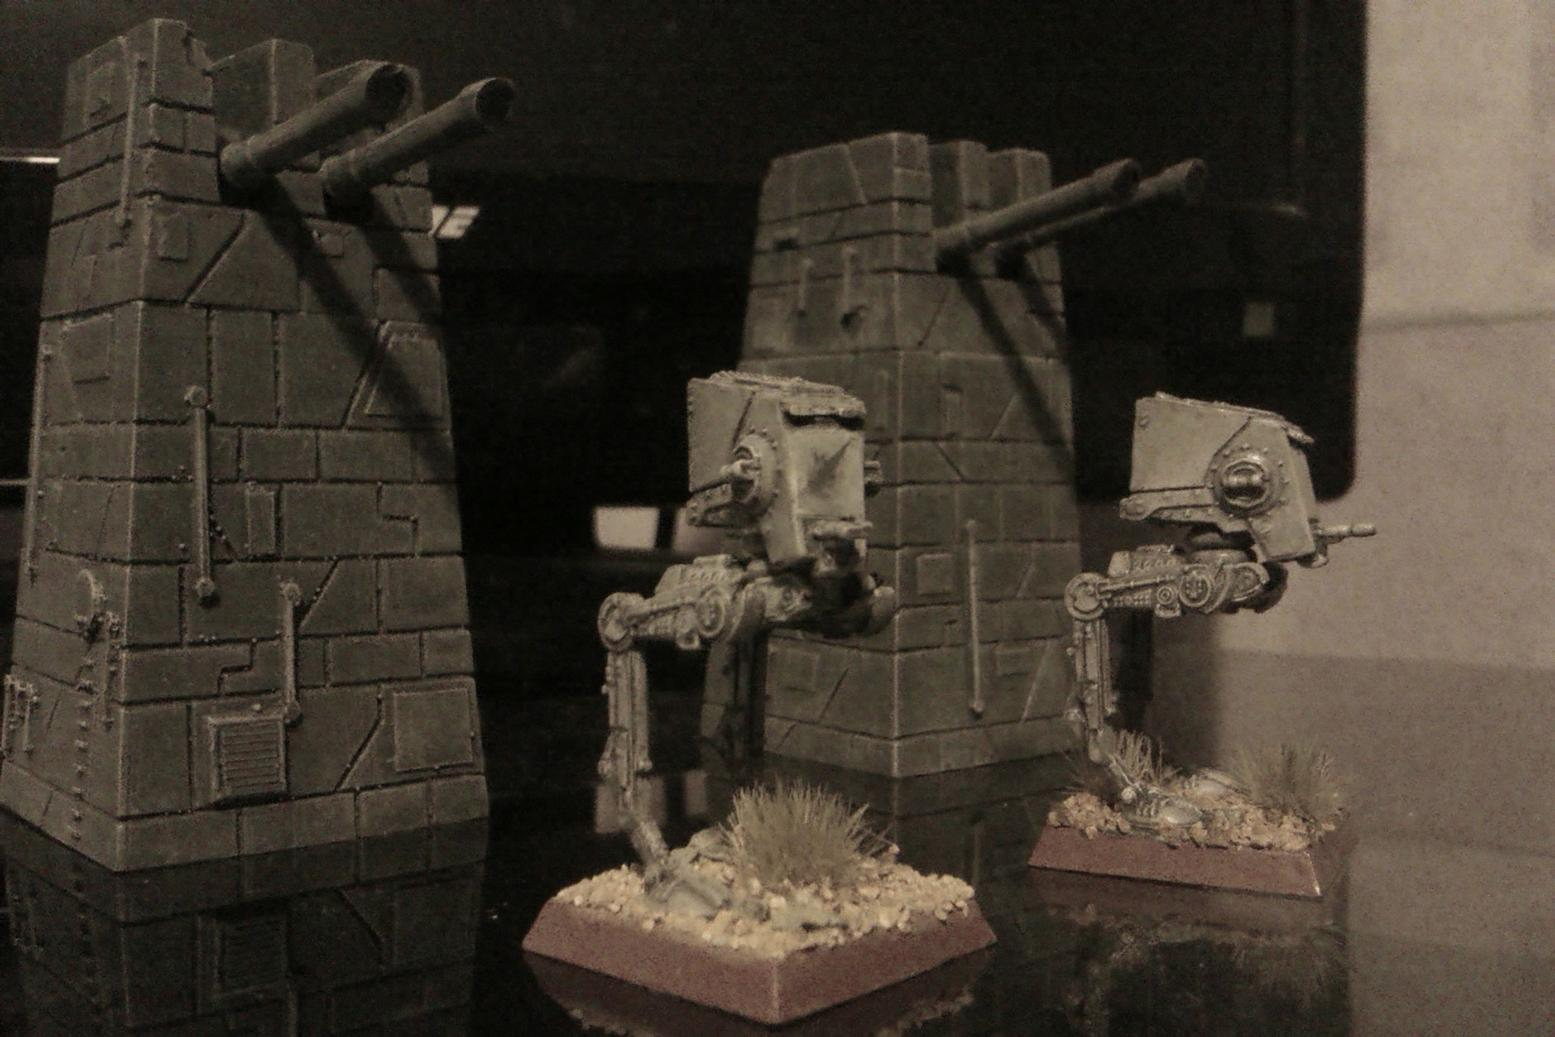 6mm, Defences, Empire, Epic, Fortifications, Grey, Guns, Imperial, Laser, Mech, Sentinel, Star Wars, Turret, Walker, X-Wing